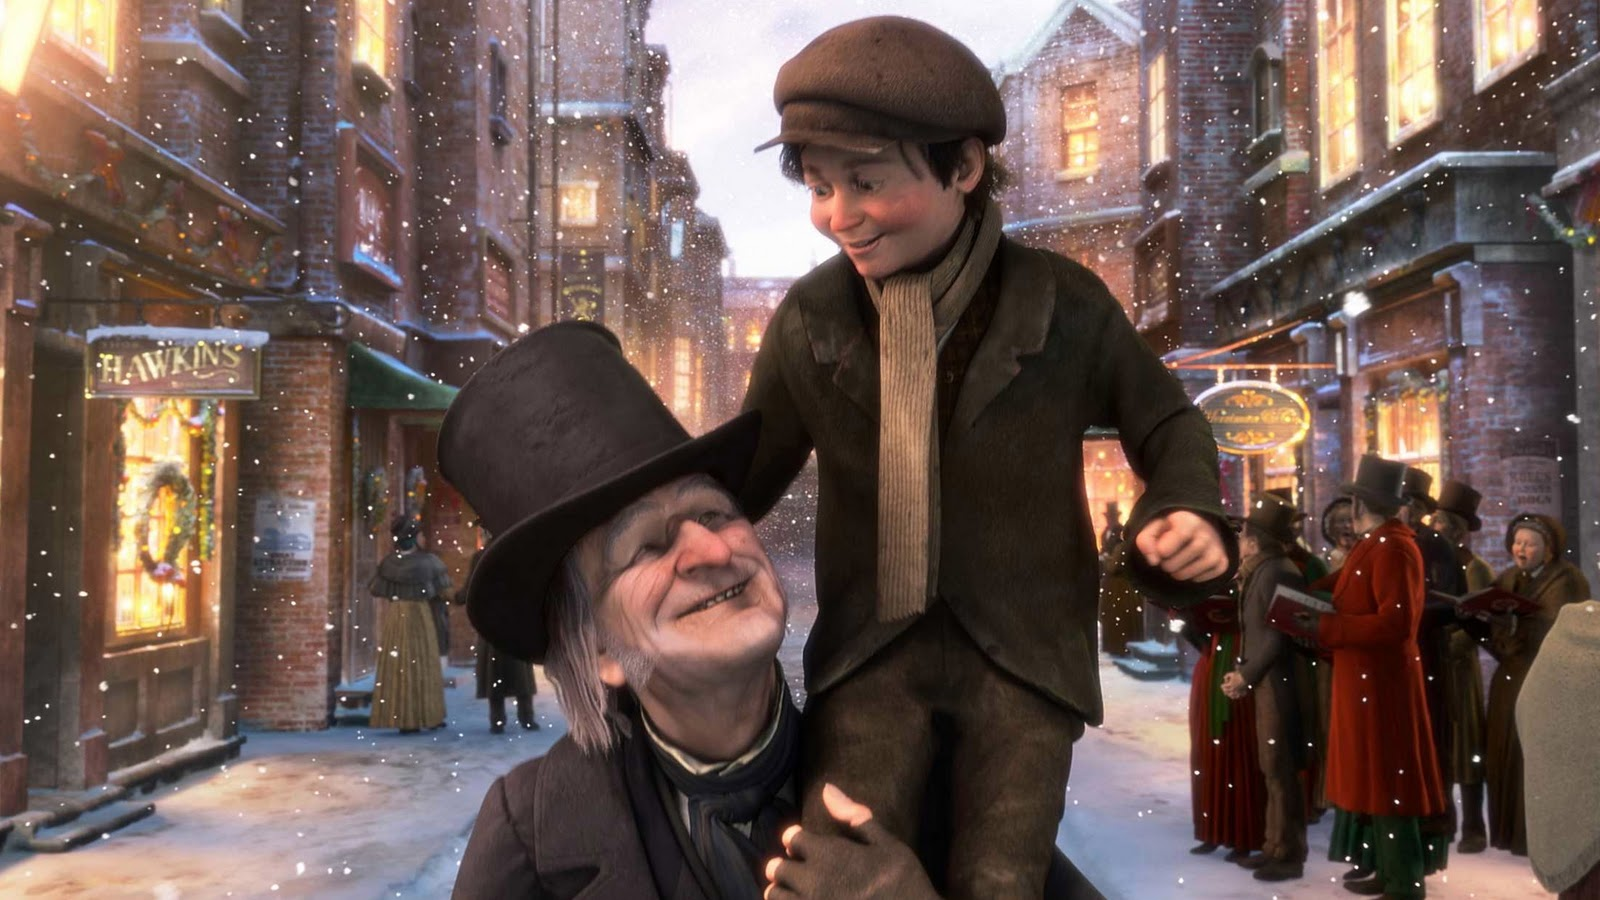 Jim Carrey Christmas Carol.25 Reviews Of Christmas 5 Robert Zemeckis And Jim Carrey